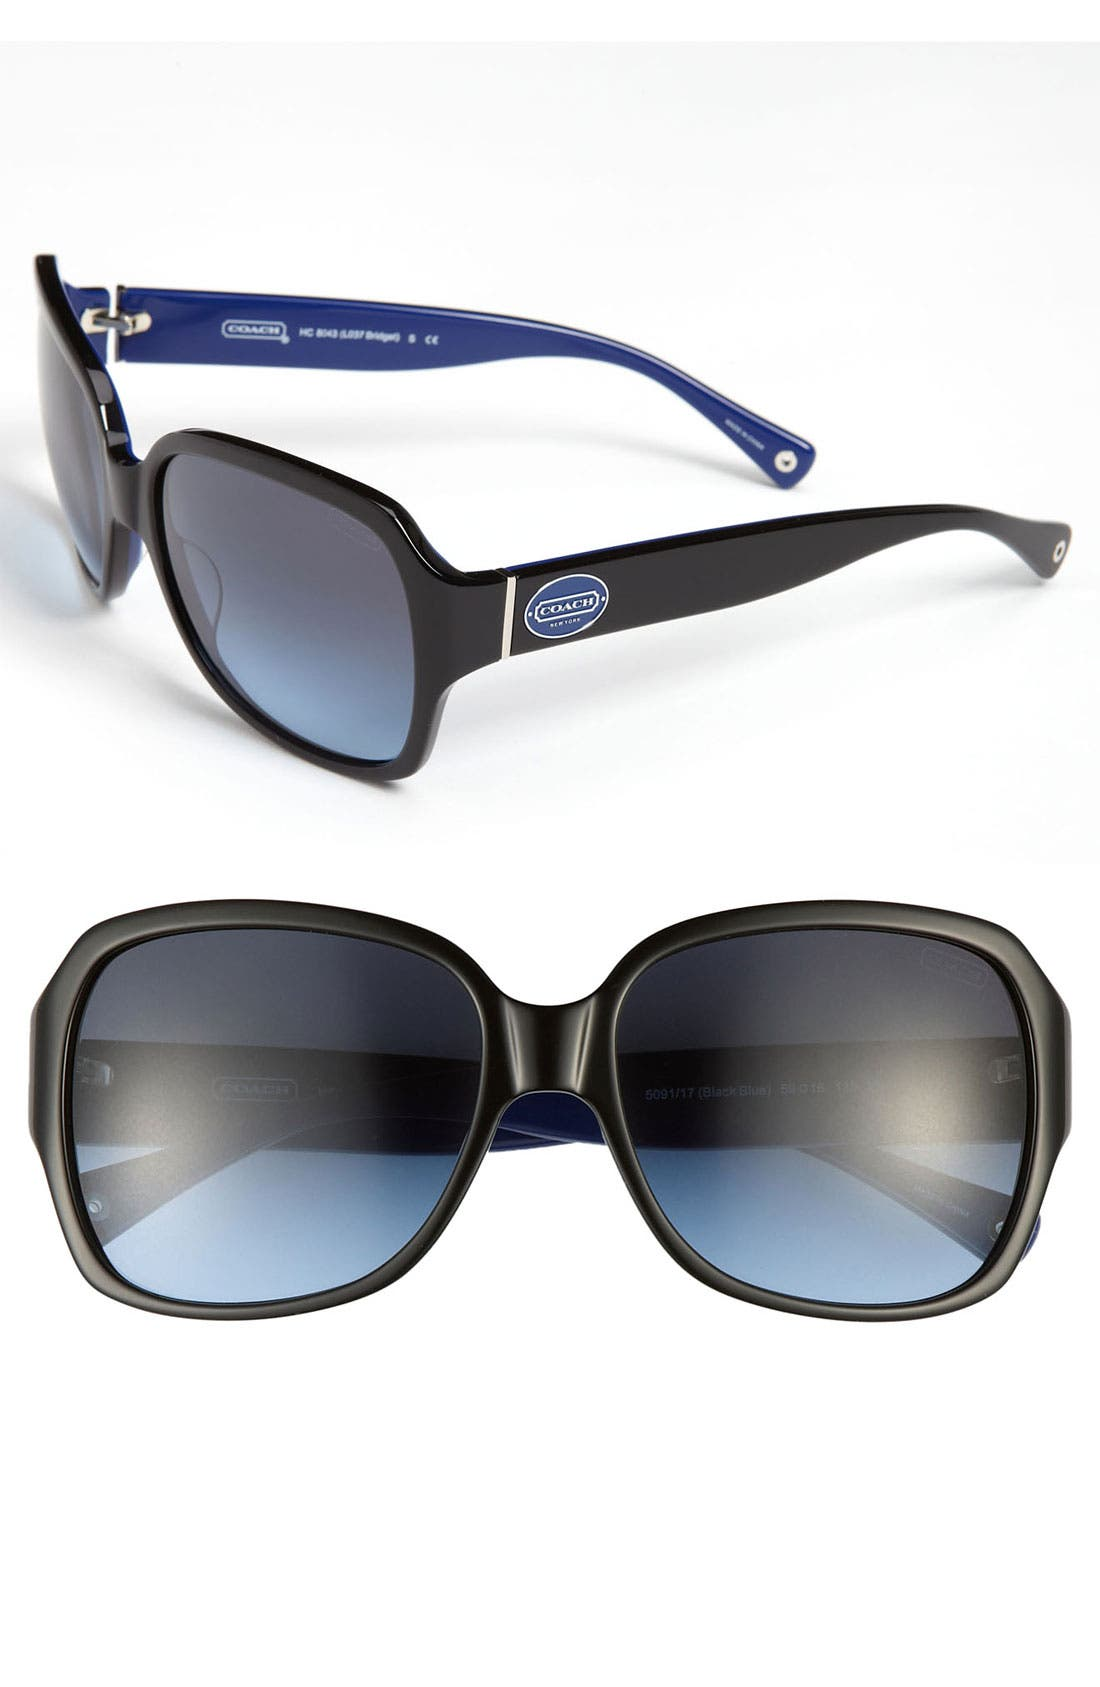 Main Image - COACH 59mm Oversized Sunglasses